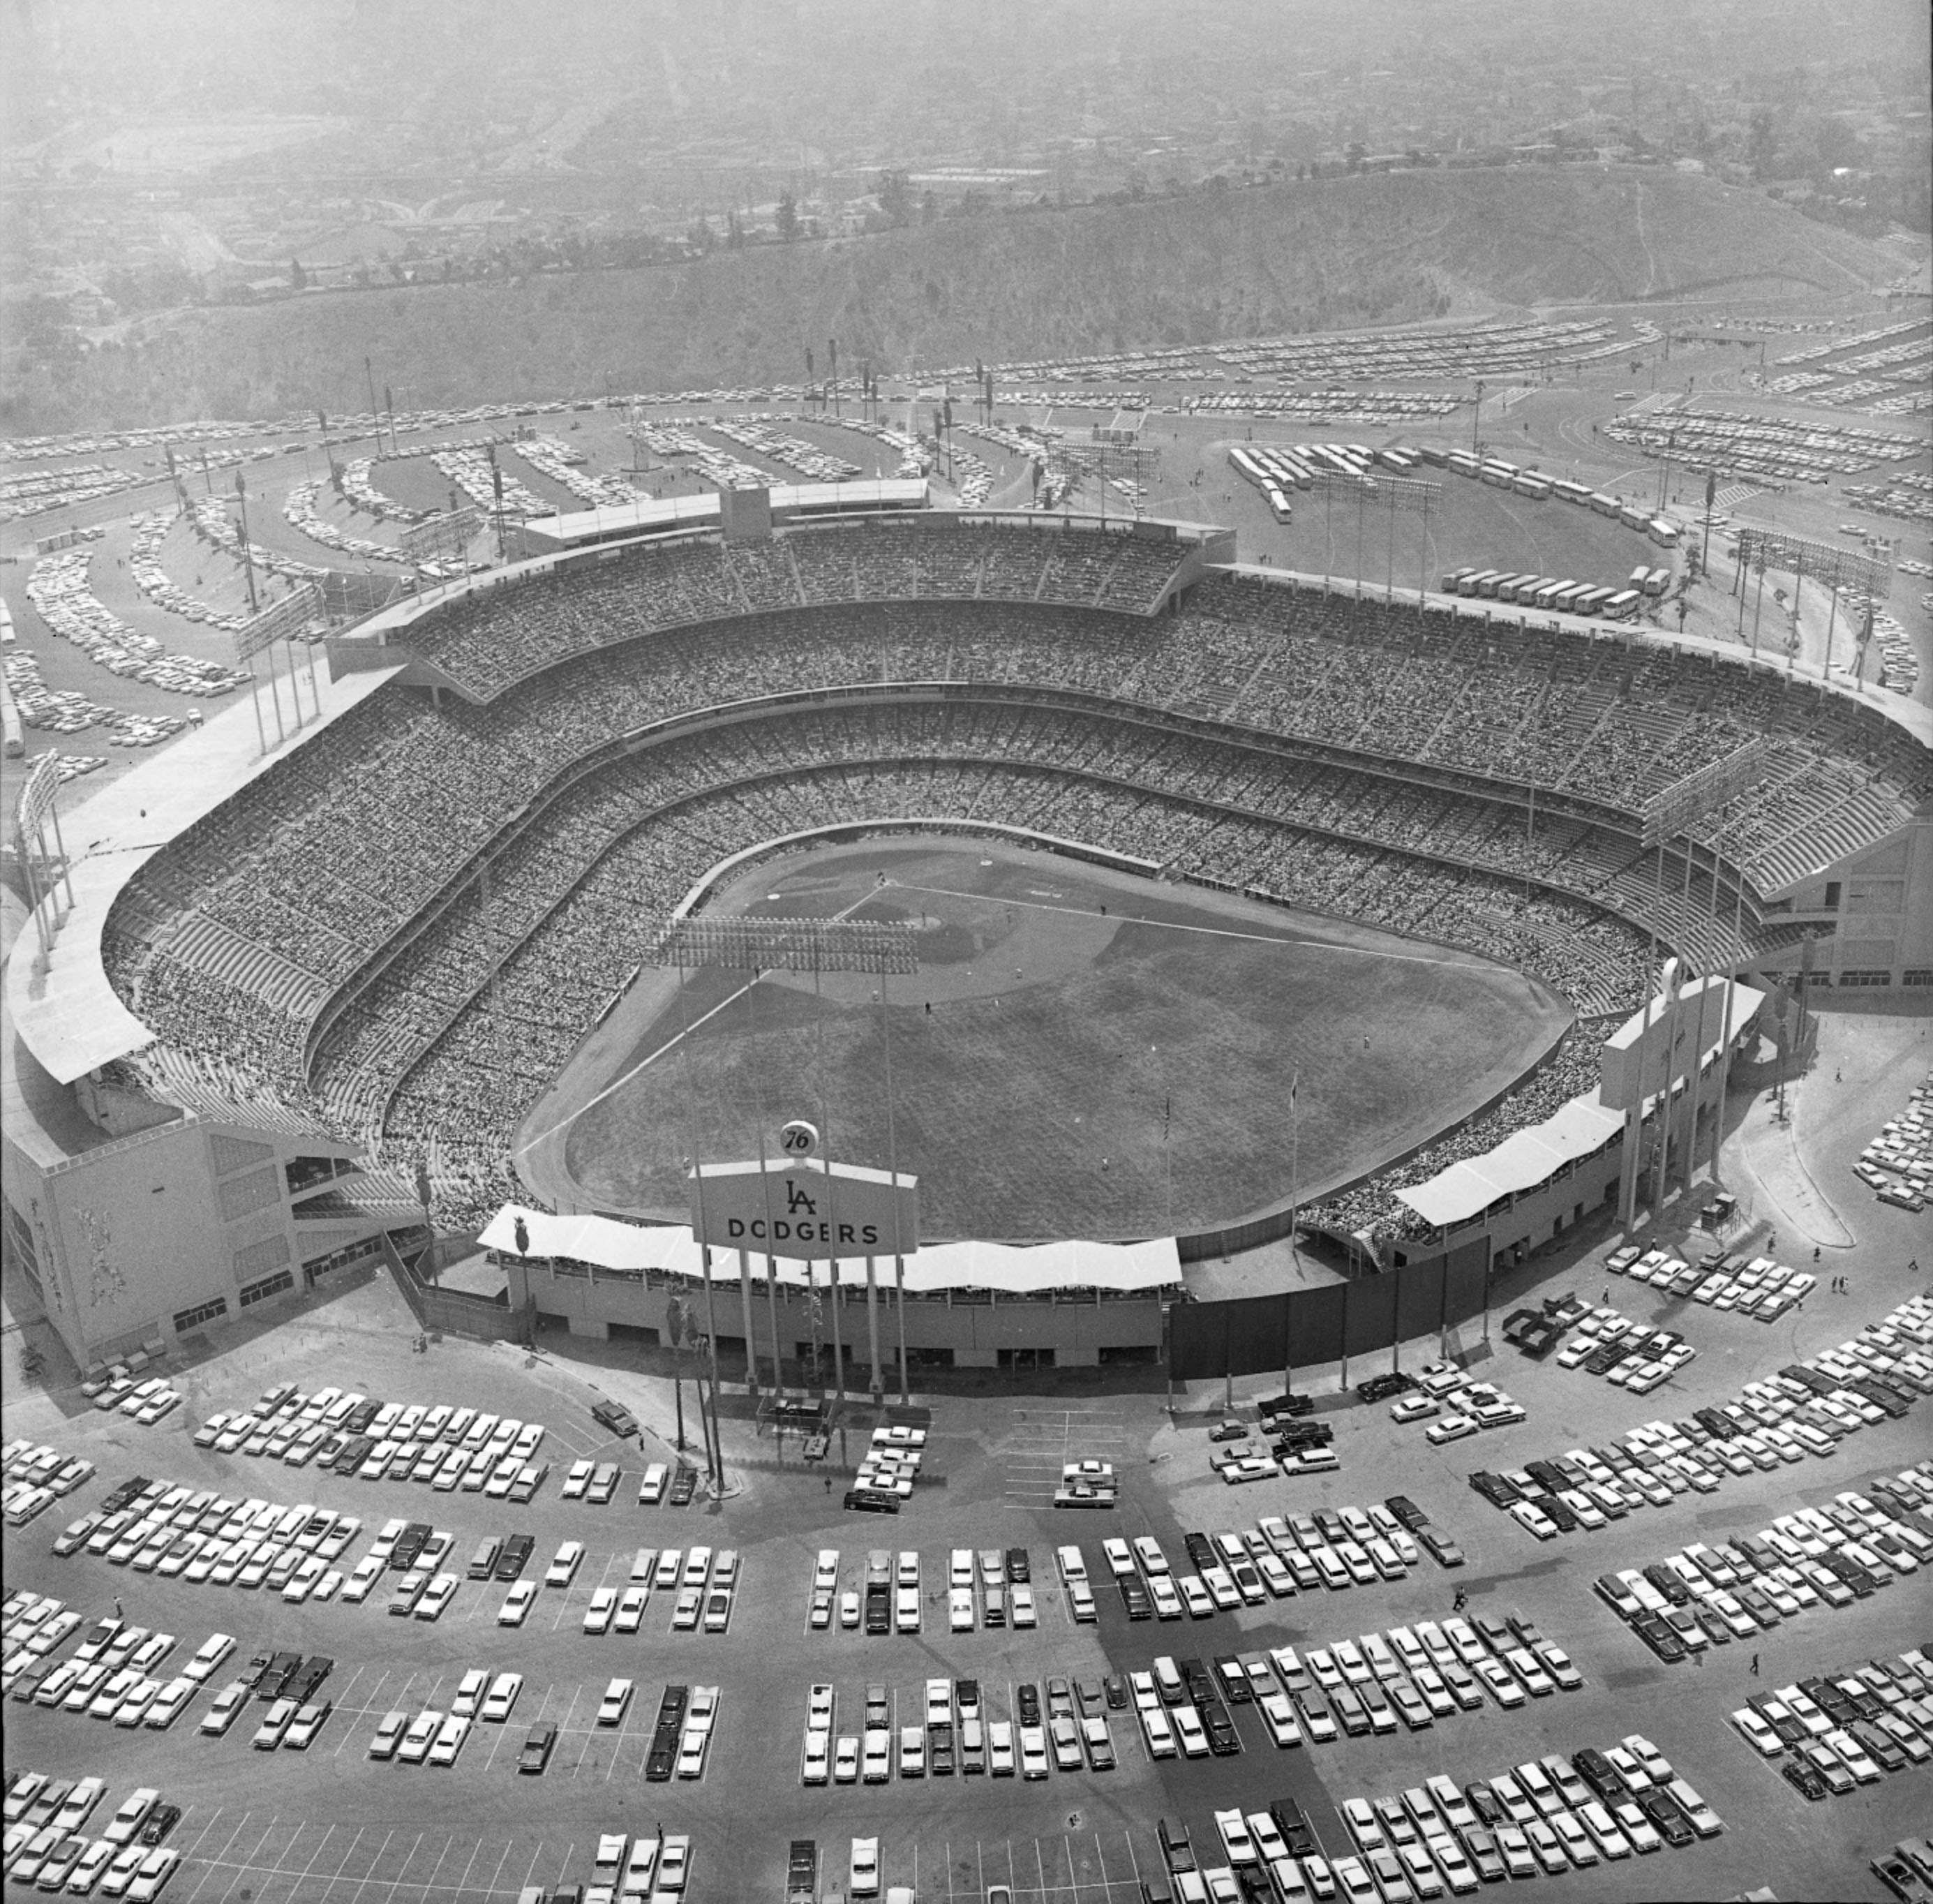 1962 view of a completed Dodger Stadium. Courtesy of the Los Angeles Times Photographic Archive. Department of Special Collections, Charles E. Young Research Library, UCLA. Used under a Creative Commons license (CC BY-NC-SA 3.0 US).